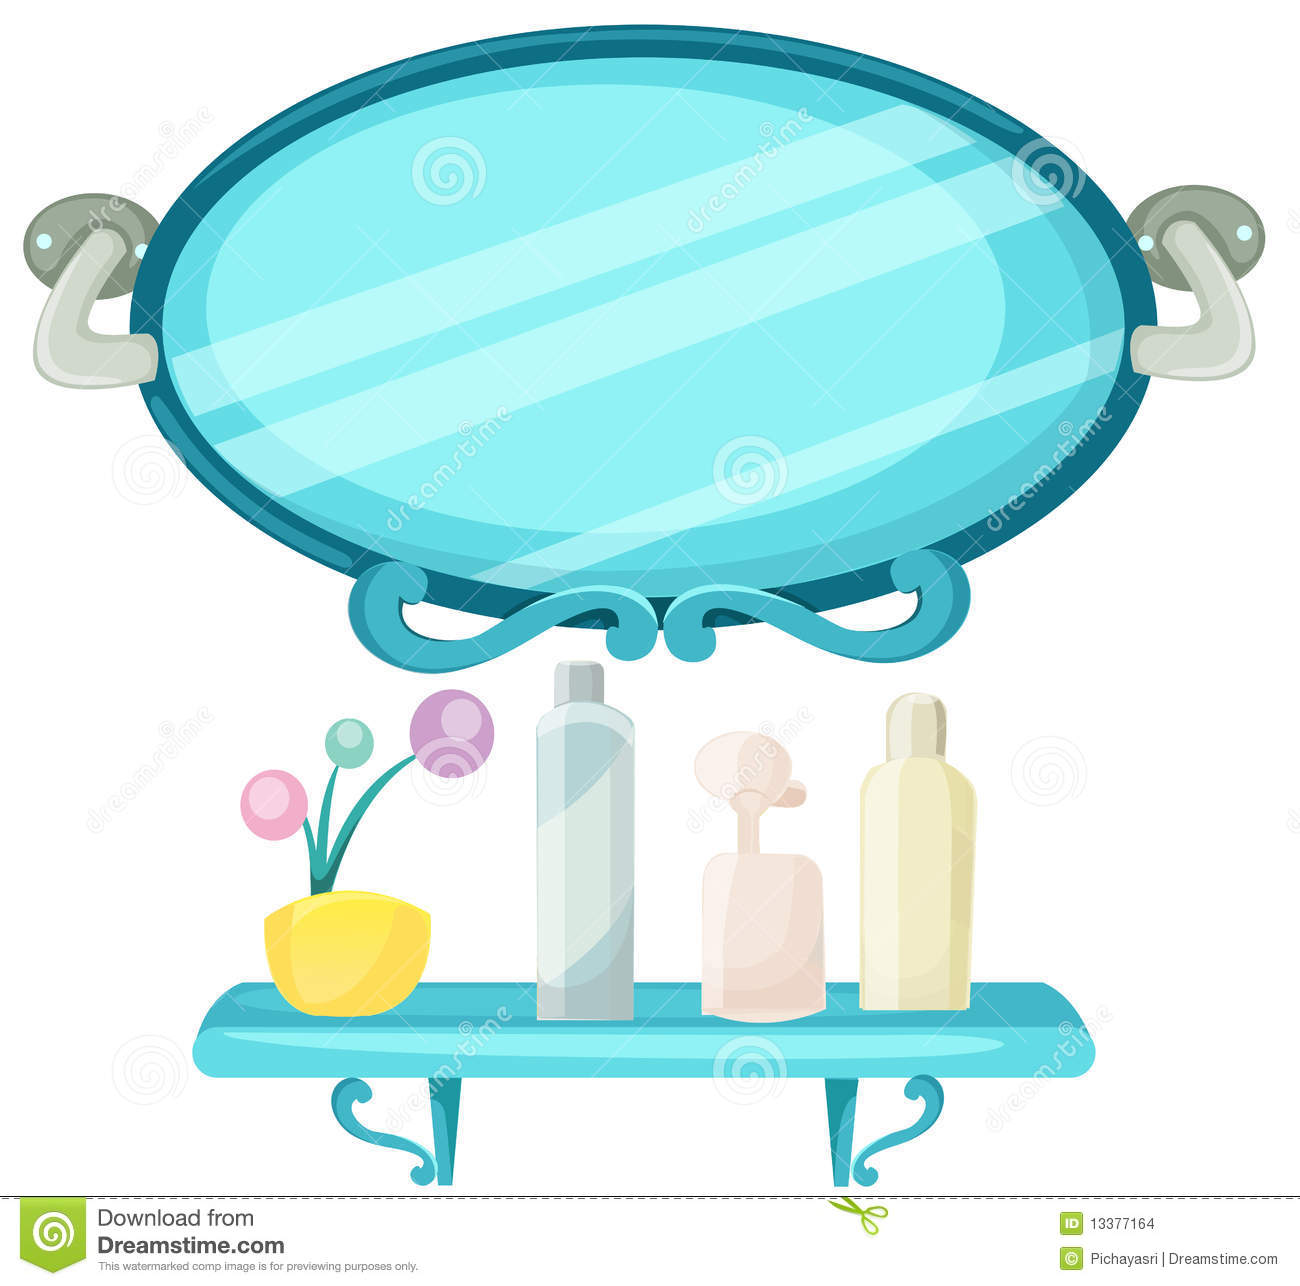 Shelf In A Bathroom With Mirror Stock Vector - Illustration of ...